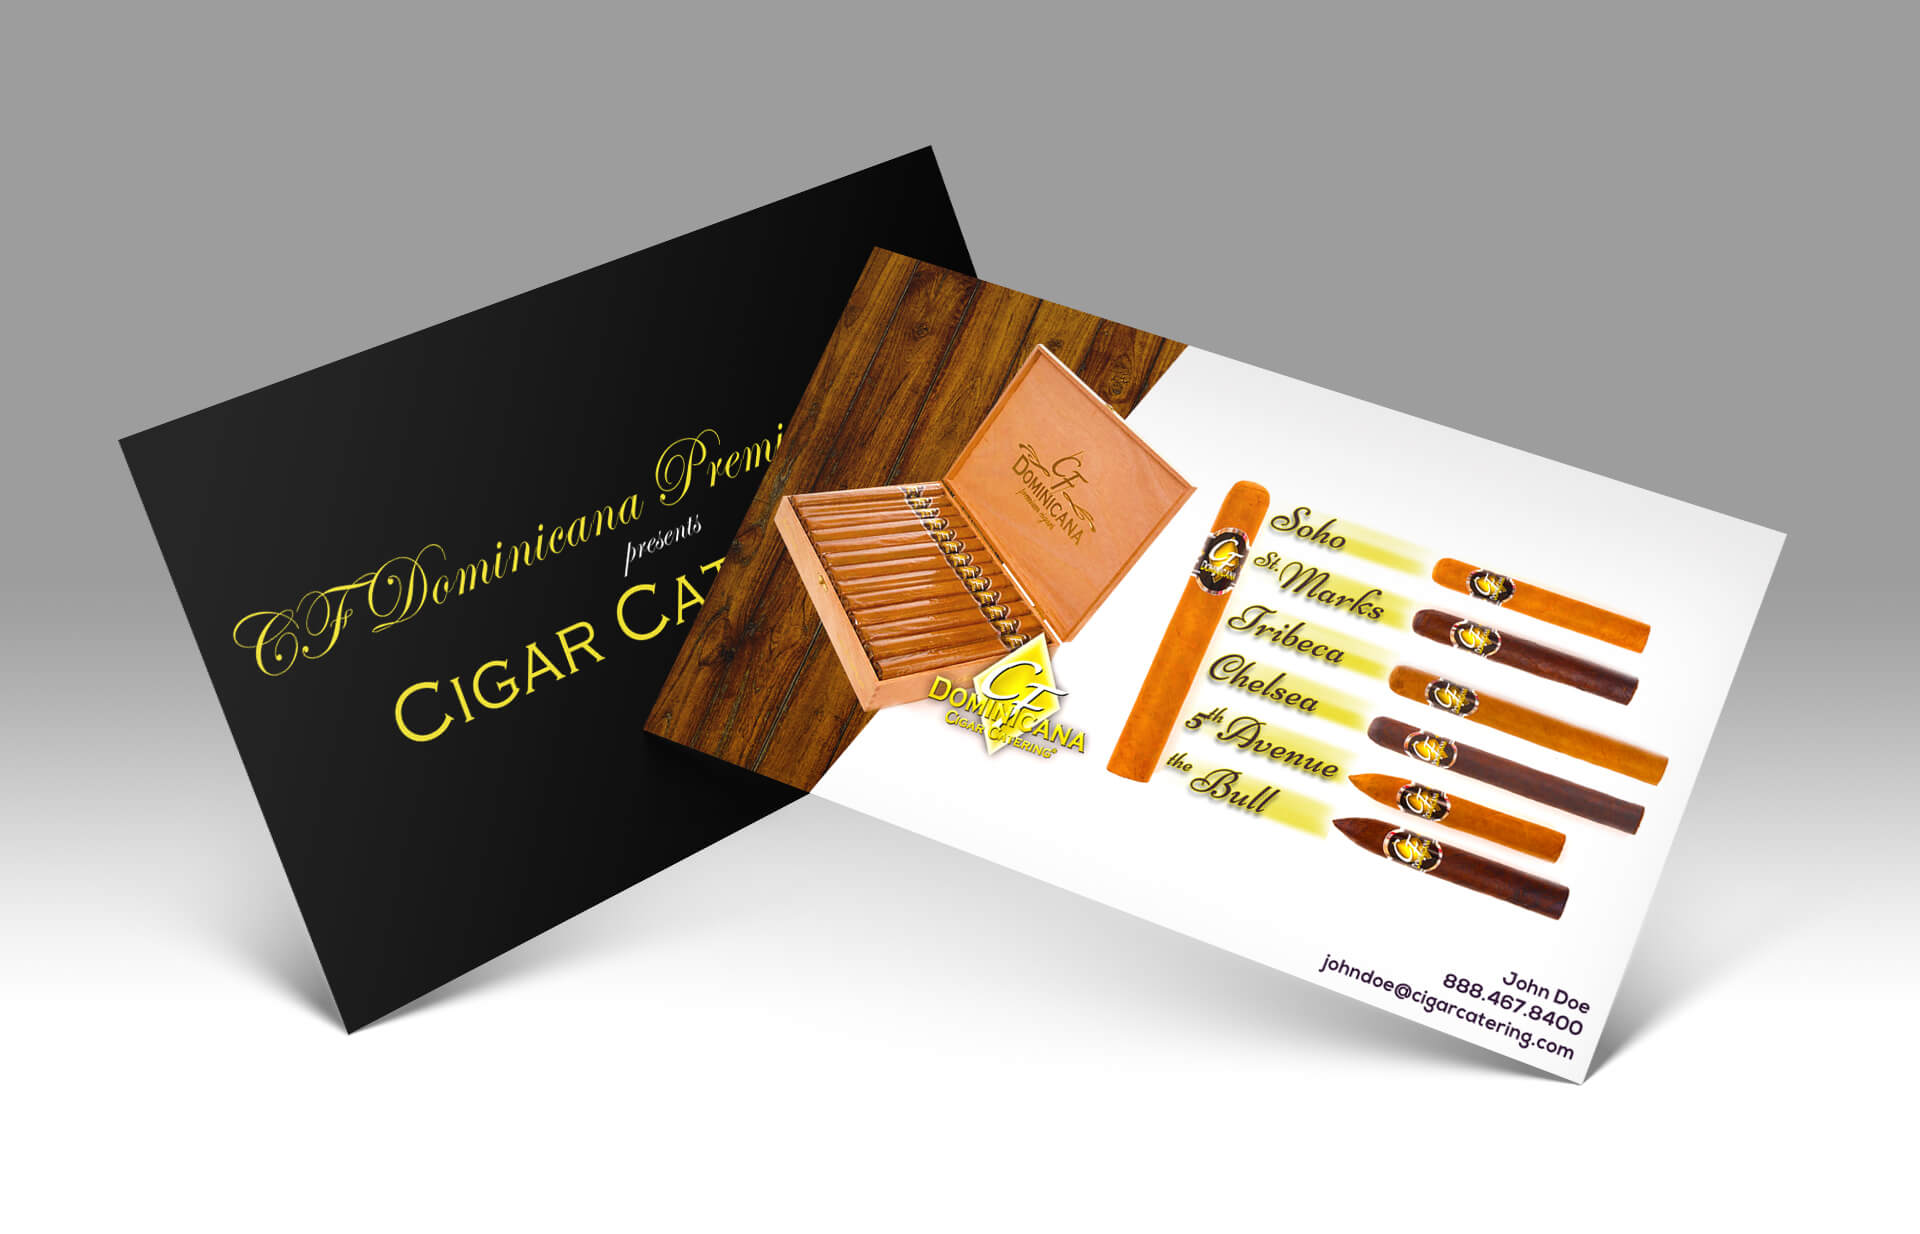 cf dominicana premium cigars portfolio business cards